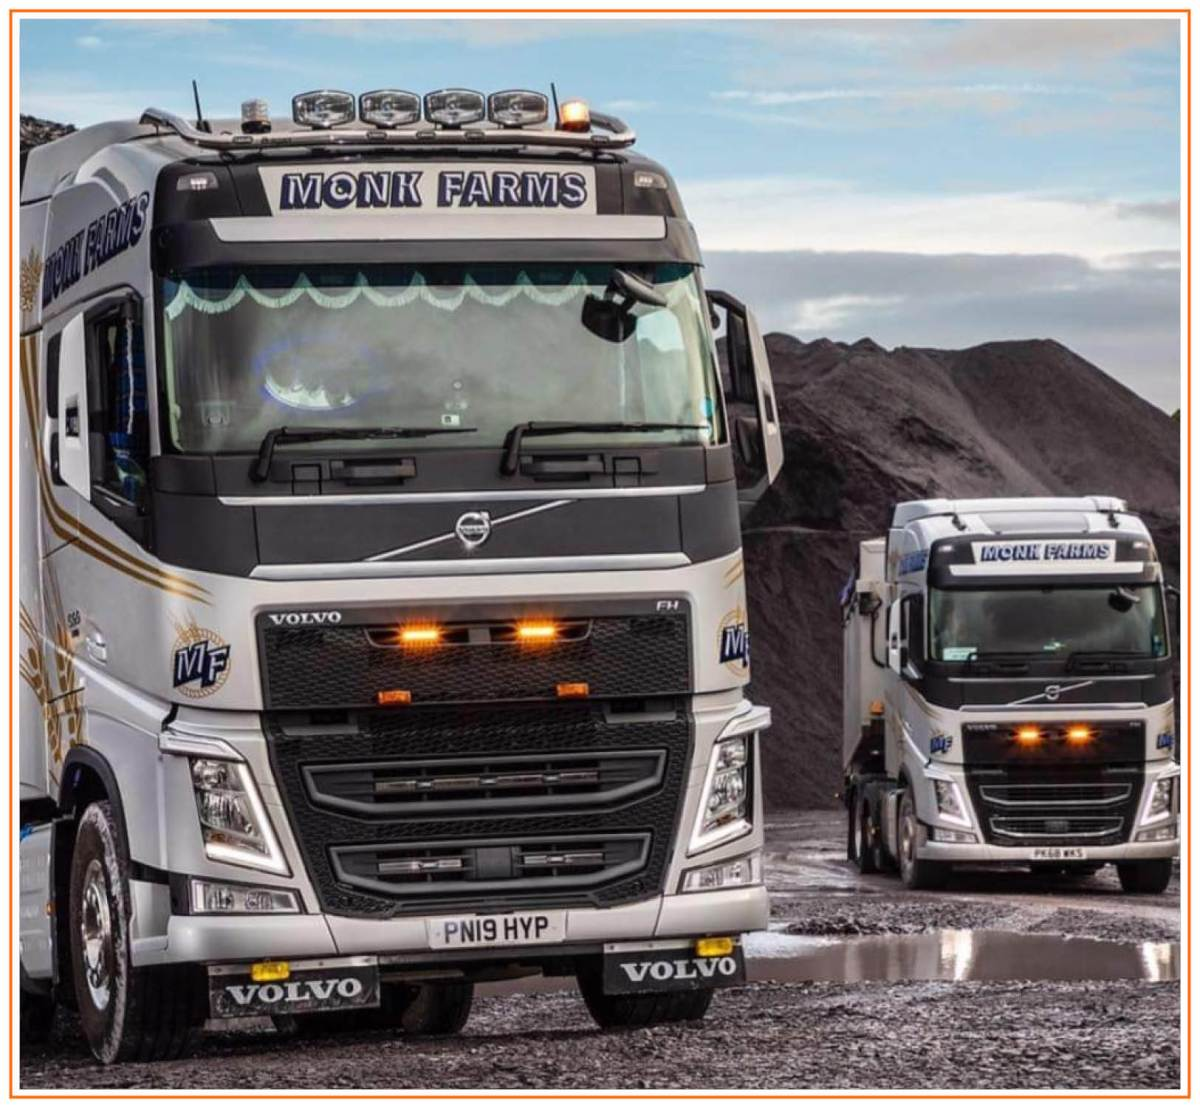 https://i1.wp.com/haultech.co.uk/wp-content/uploads/2020/02/Monk-Transport-choose-HaulTechs-Bulk-Haulage-TMS-to-support-their-growth.jpg?fit=1200%2C1108&ssl=1